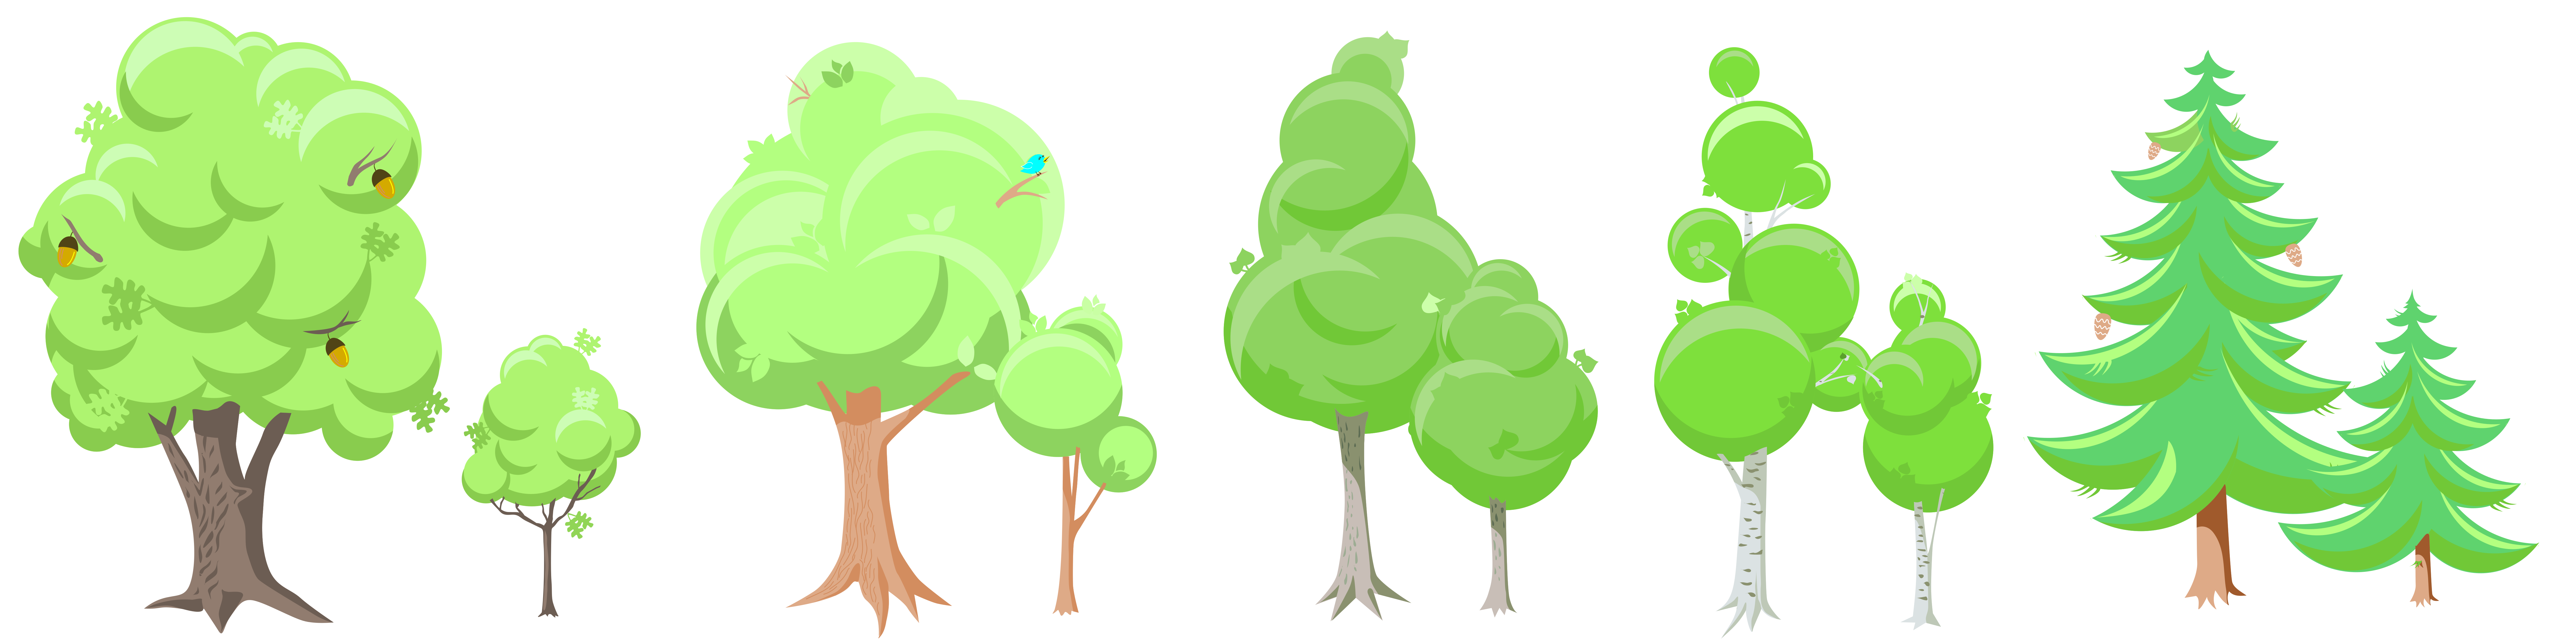 Tree clipart #6, Download drawings